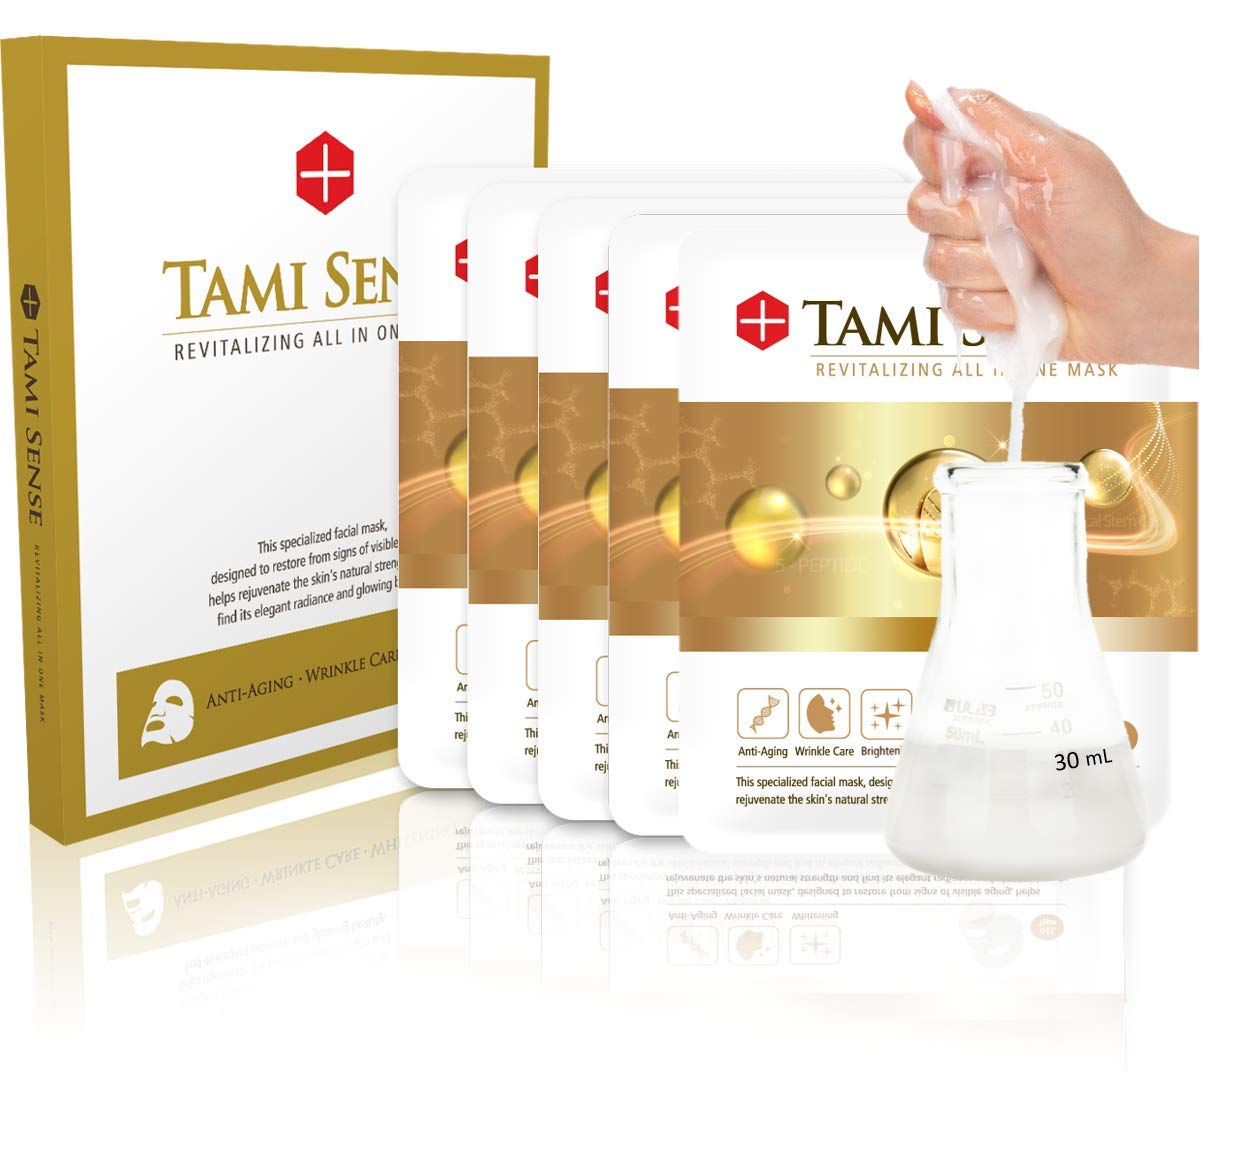 Korean Stem Cell Fermented Rice Extract EGF Essence Peptide Ampoule K Beauty Facial Tencel Mask Sheet-Instant Glow Effect for Dewy Skin, Anti Aging (Tami sense) by FAMENITY